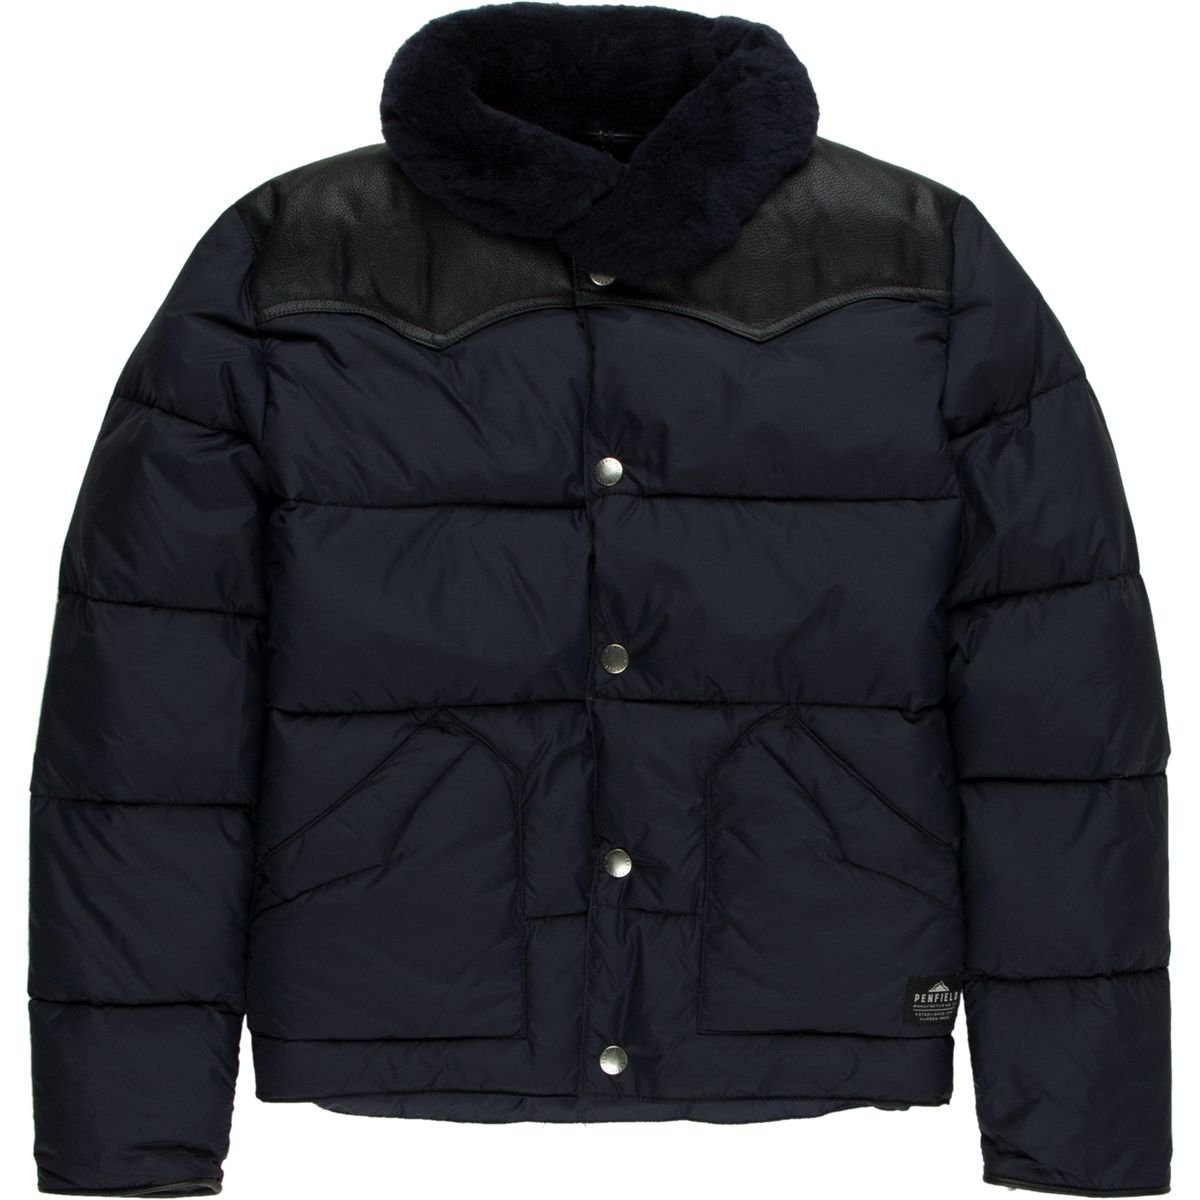 Penfield Rockwool Leather Yoke Down Jacket - Boys' Navy, 7-8